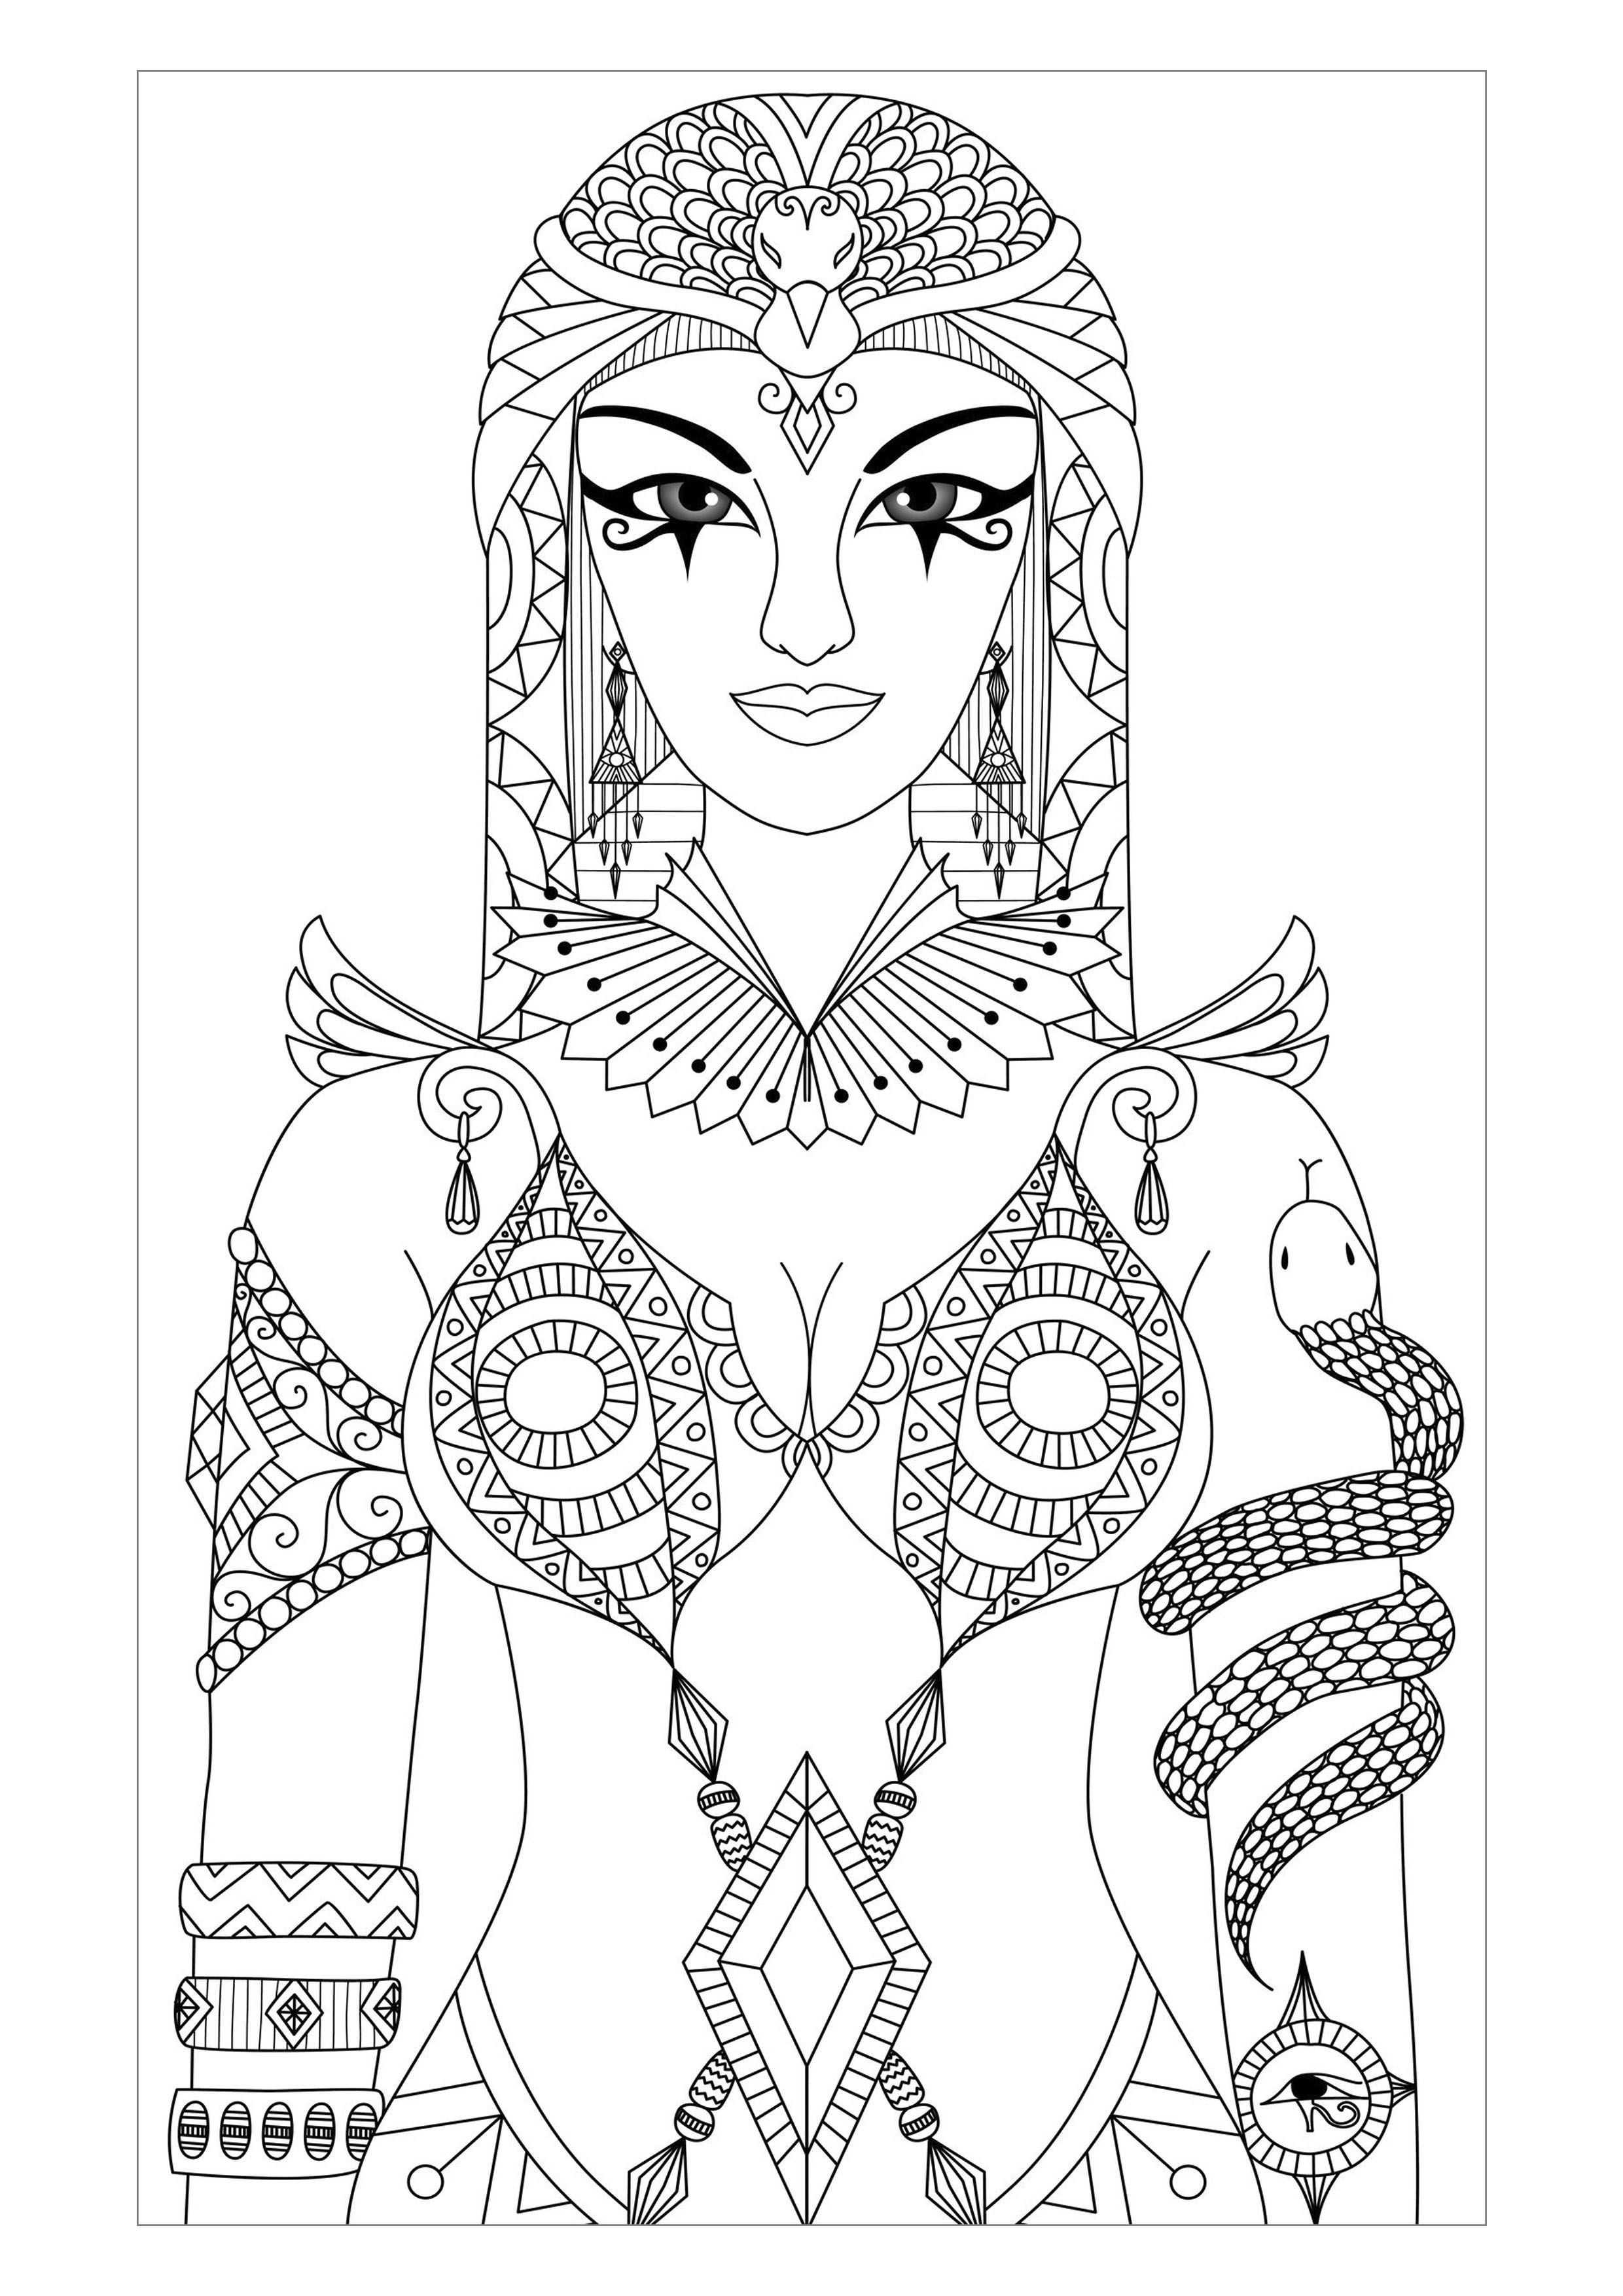 Queen Nefertiti Drawing at GetDrawings.com | Free for ...